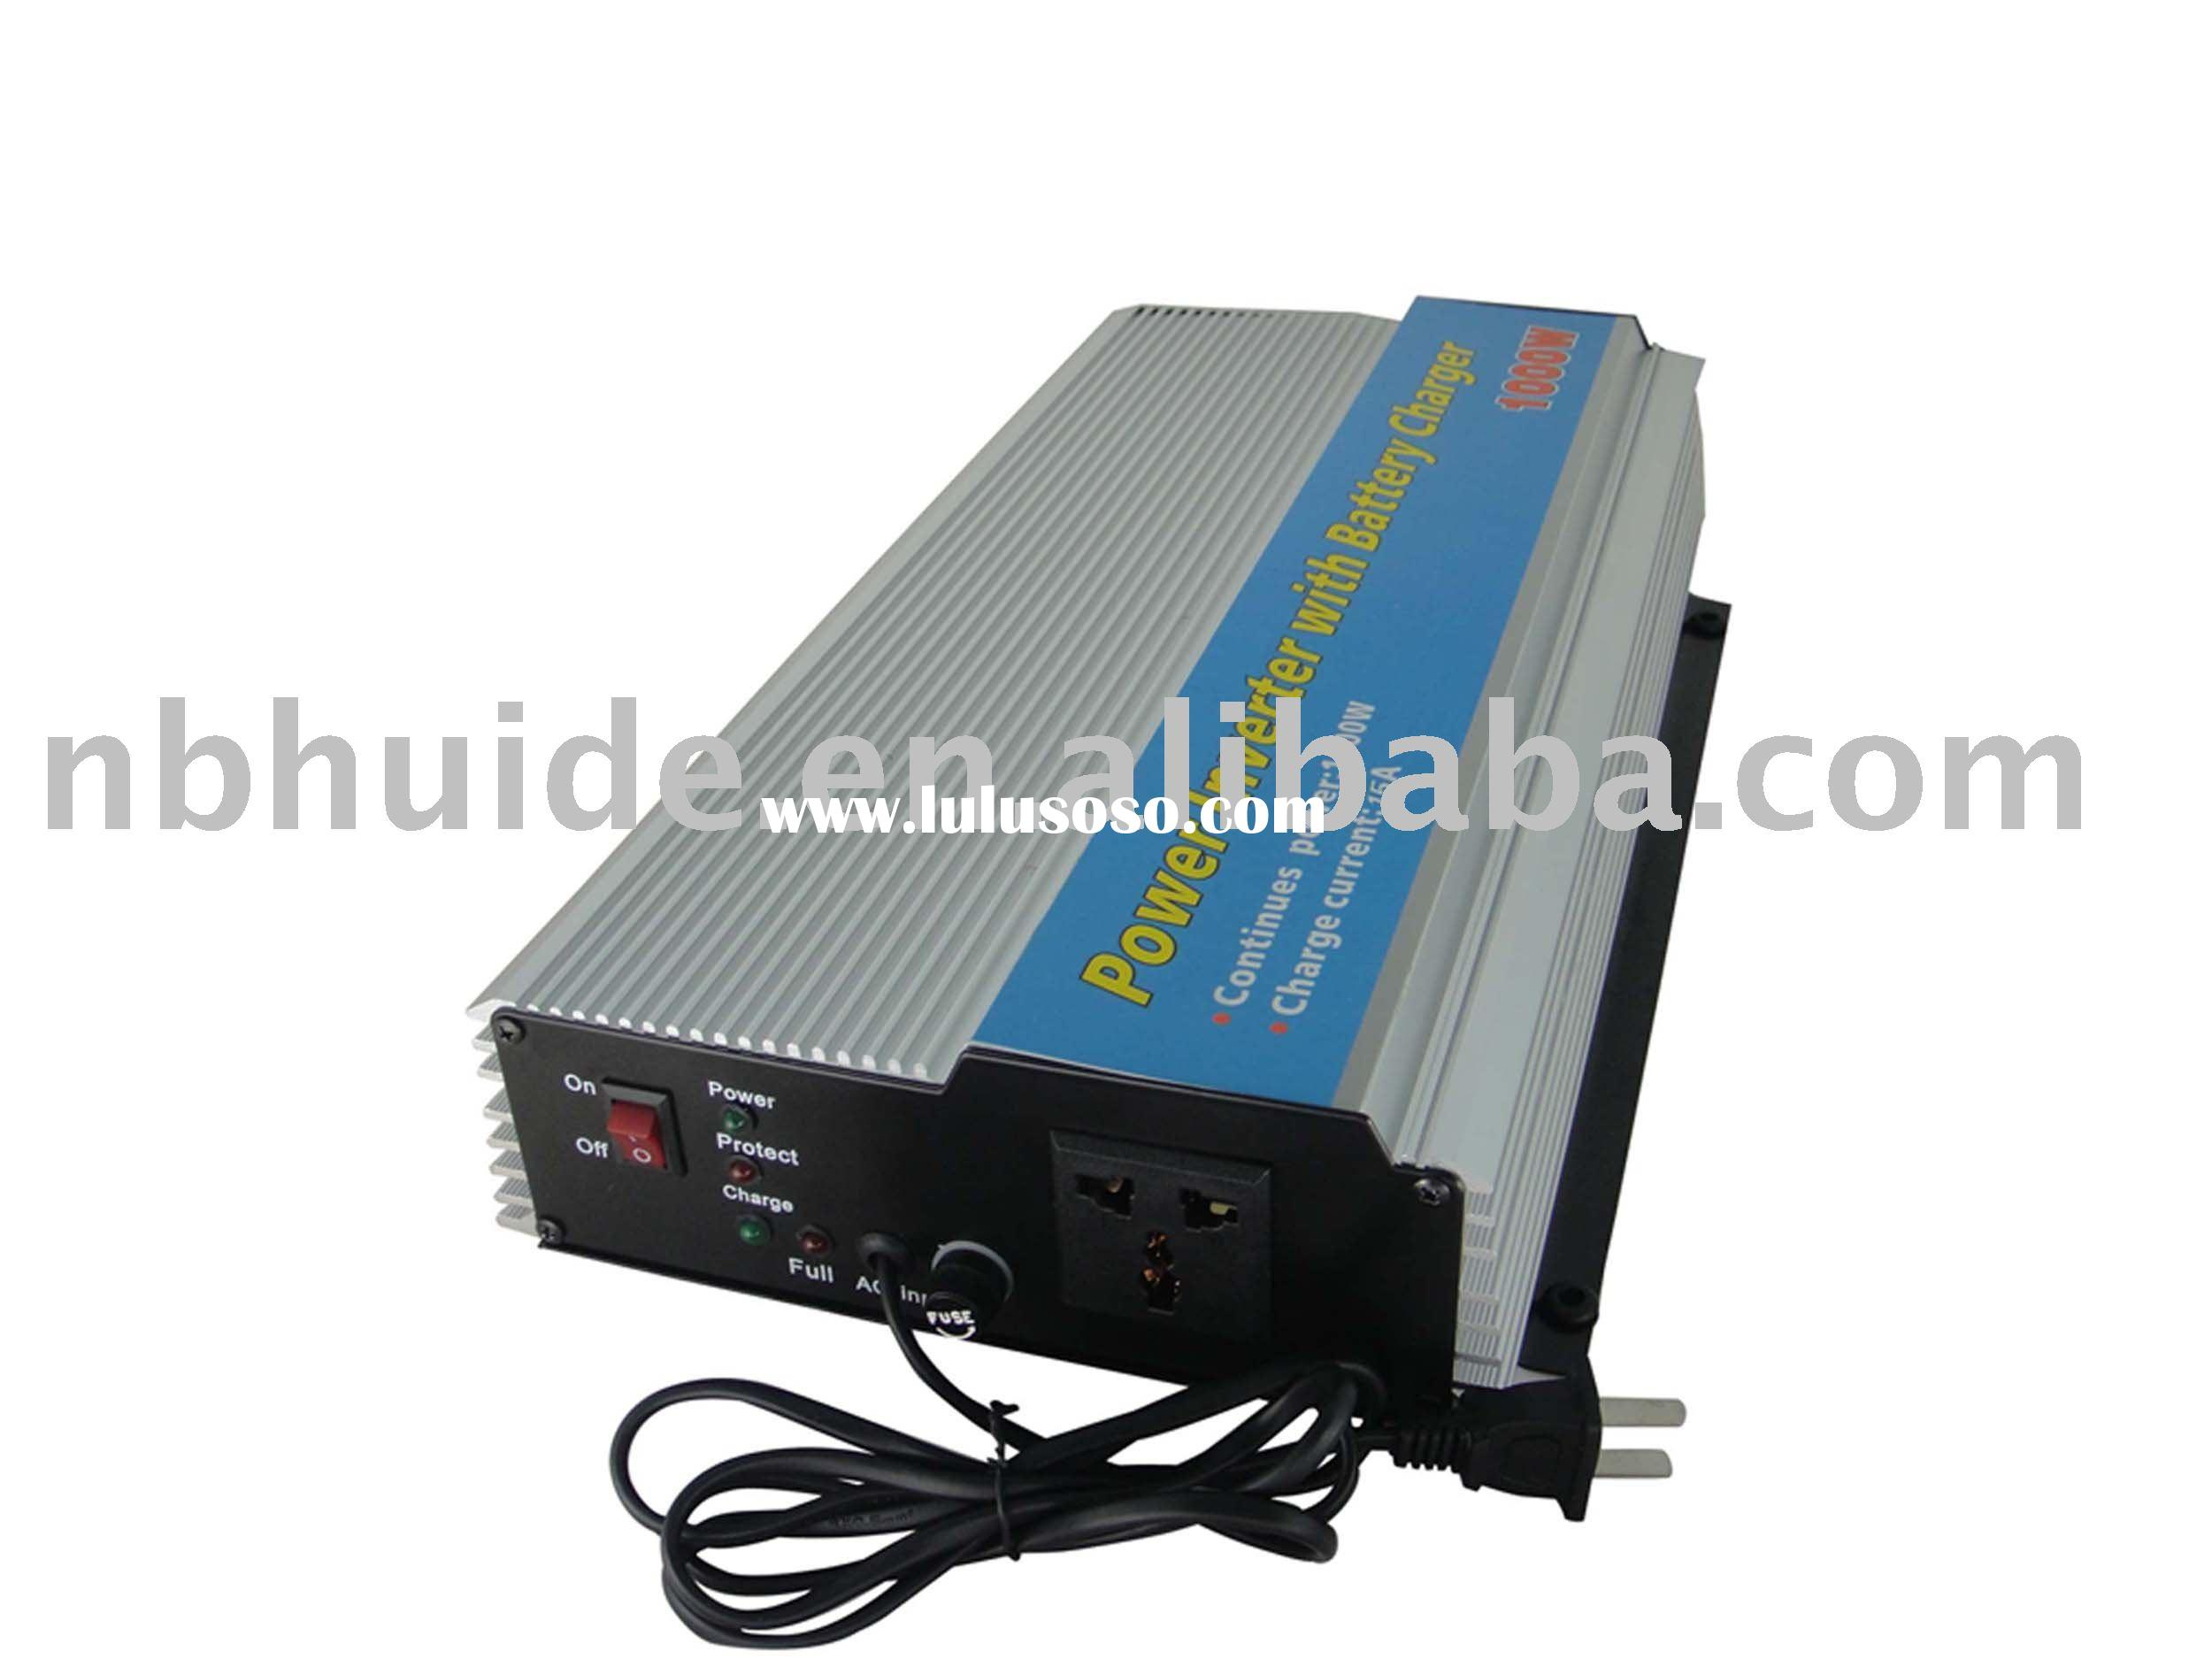 500-1000W Power Inverter with battery charger